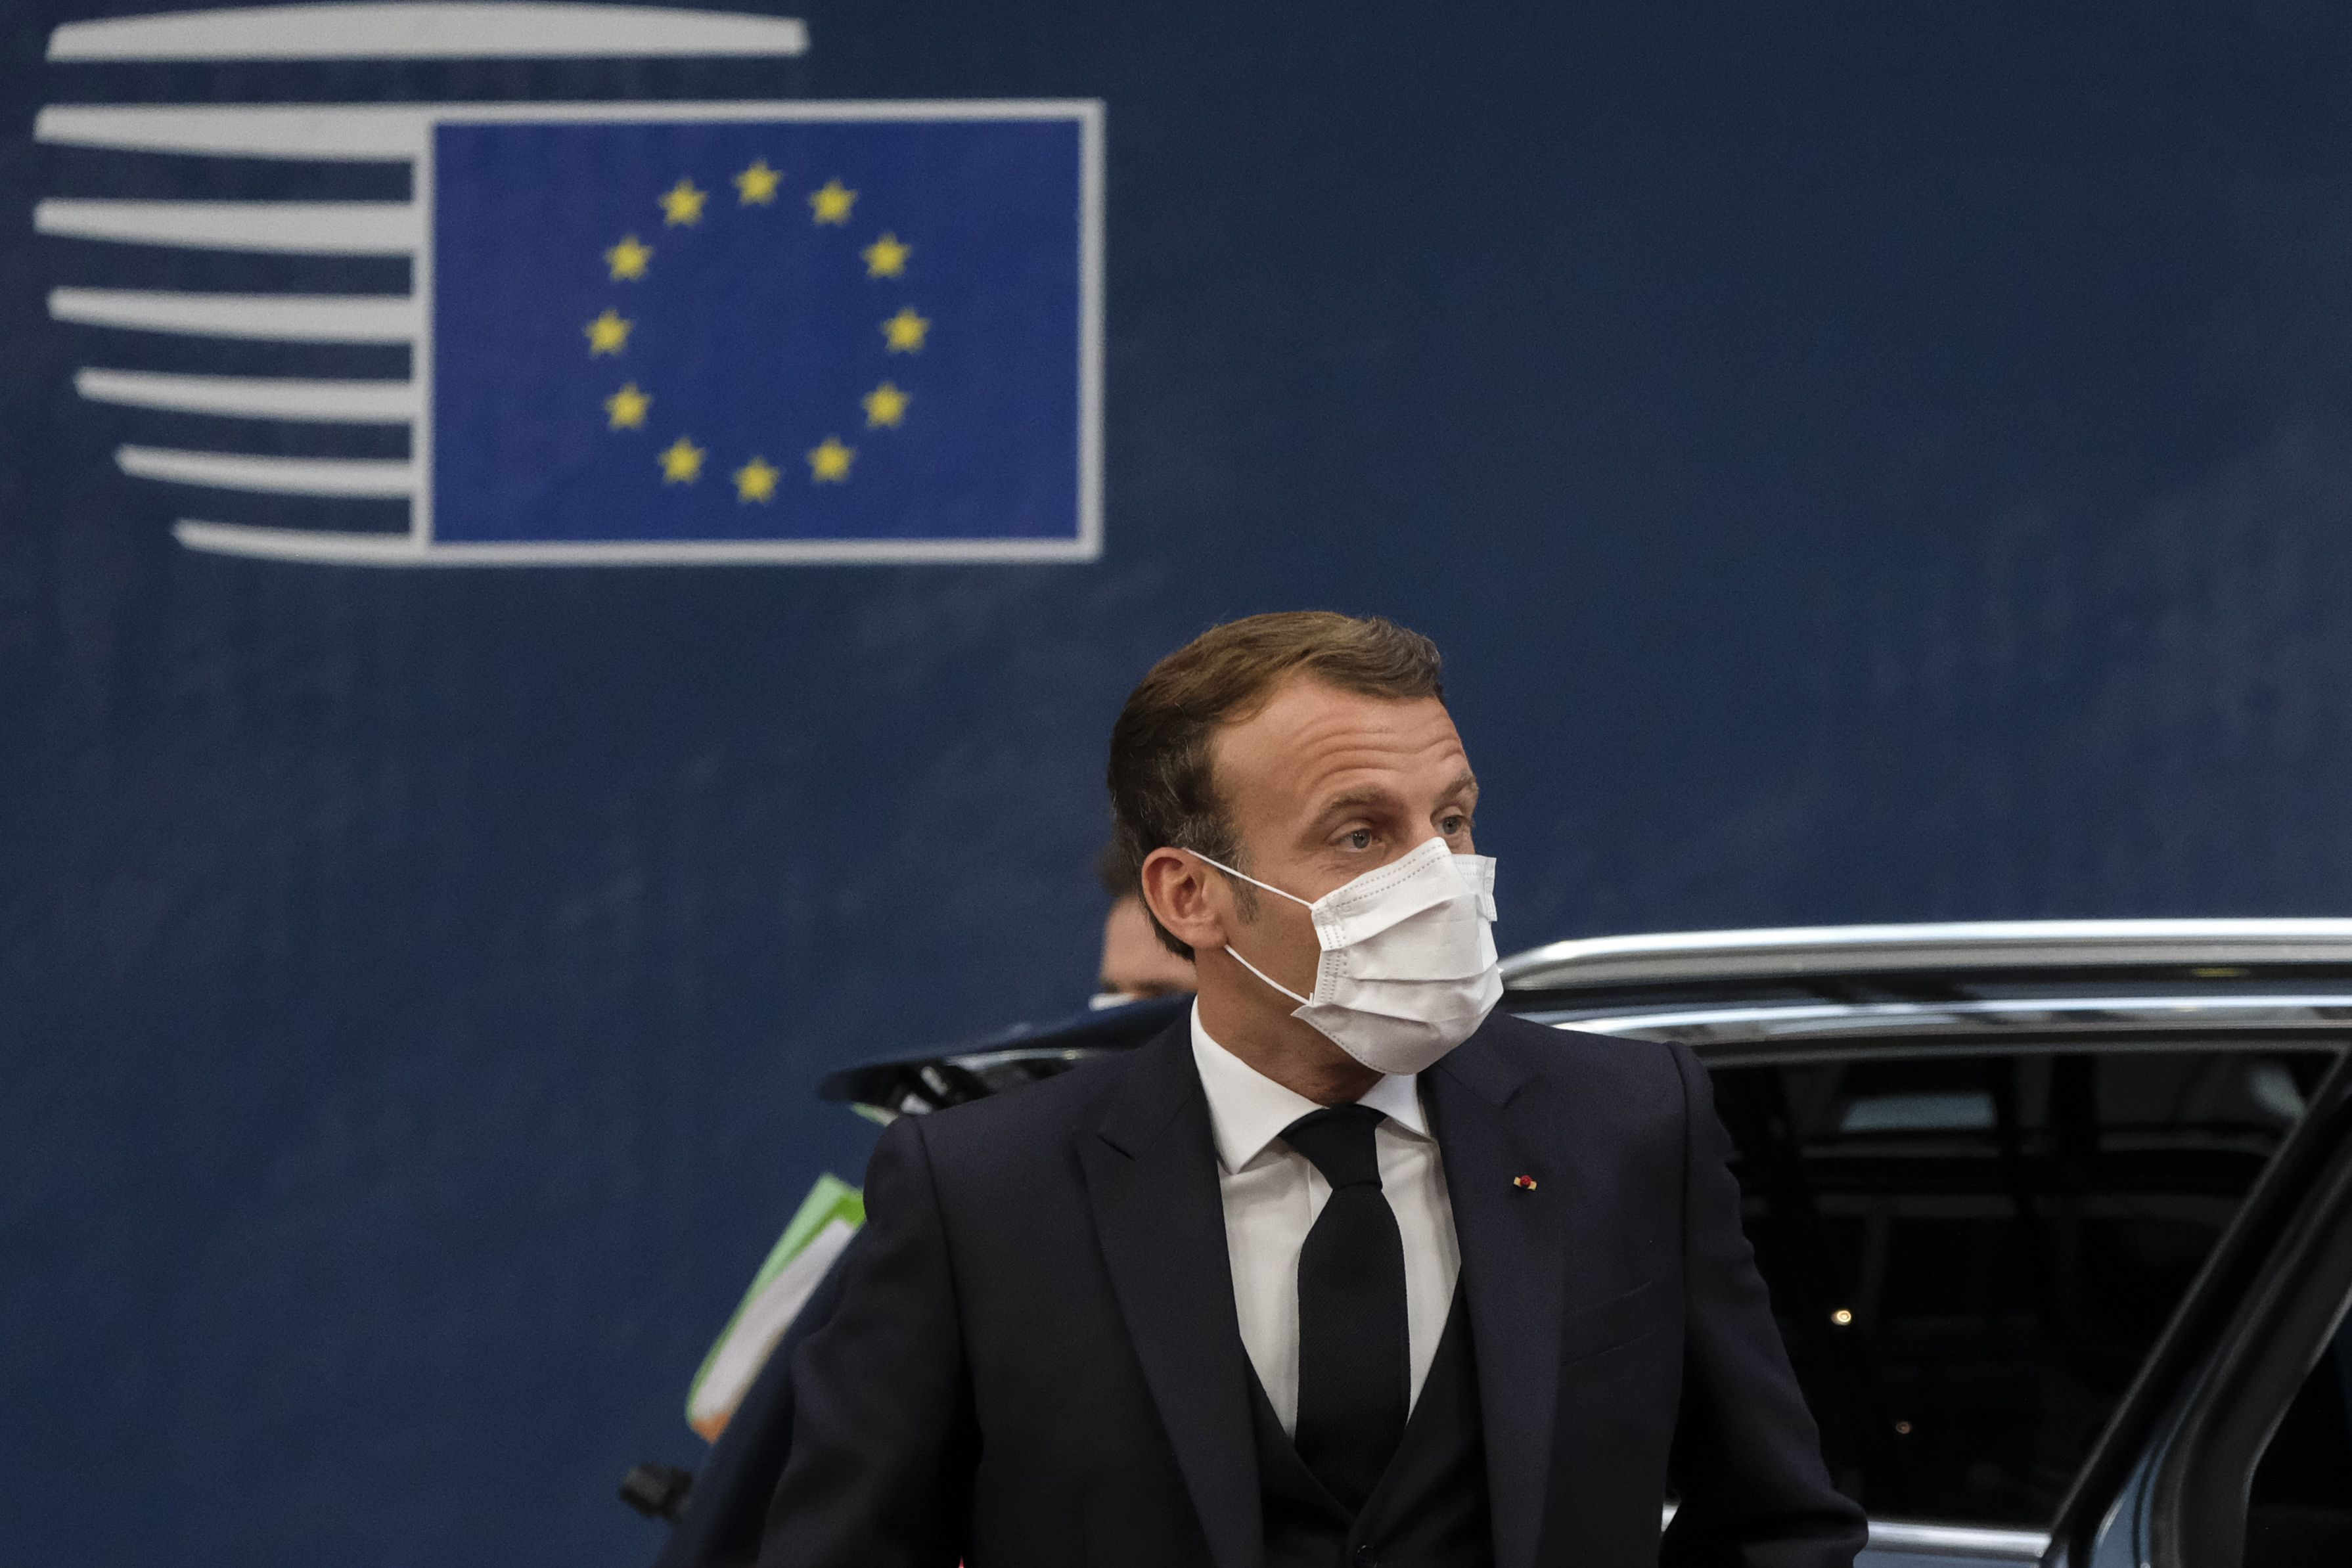 18/07/2020 HANDOUT - 18 July 2020, Belgium, Brussels: French President Emmanuel Macron wears a face mask as he arrives to attend the second day of the European Council special summit. Photo: -/European Council/dpa - ATTENTION: editorial use only and only if the credit mentioned above is referenced in full POLITICA INTERNACIONAL -/European Council/dpa